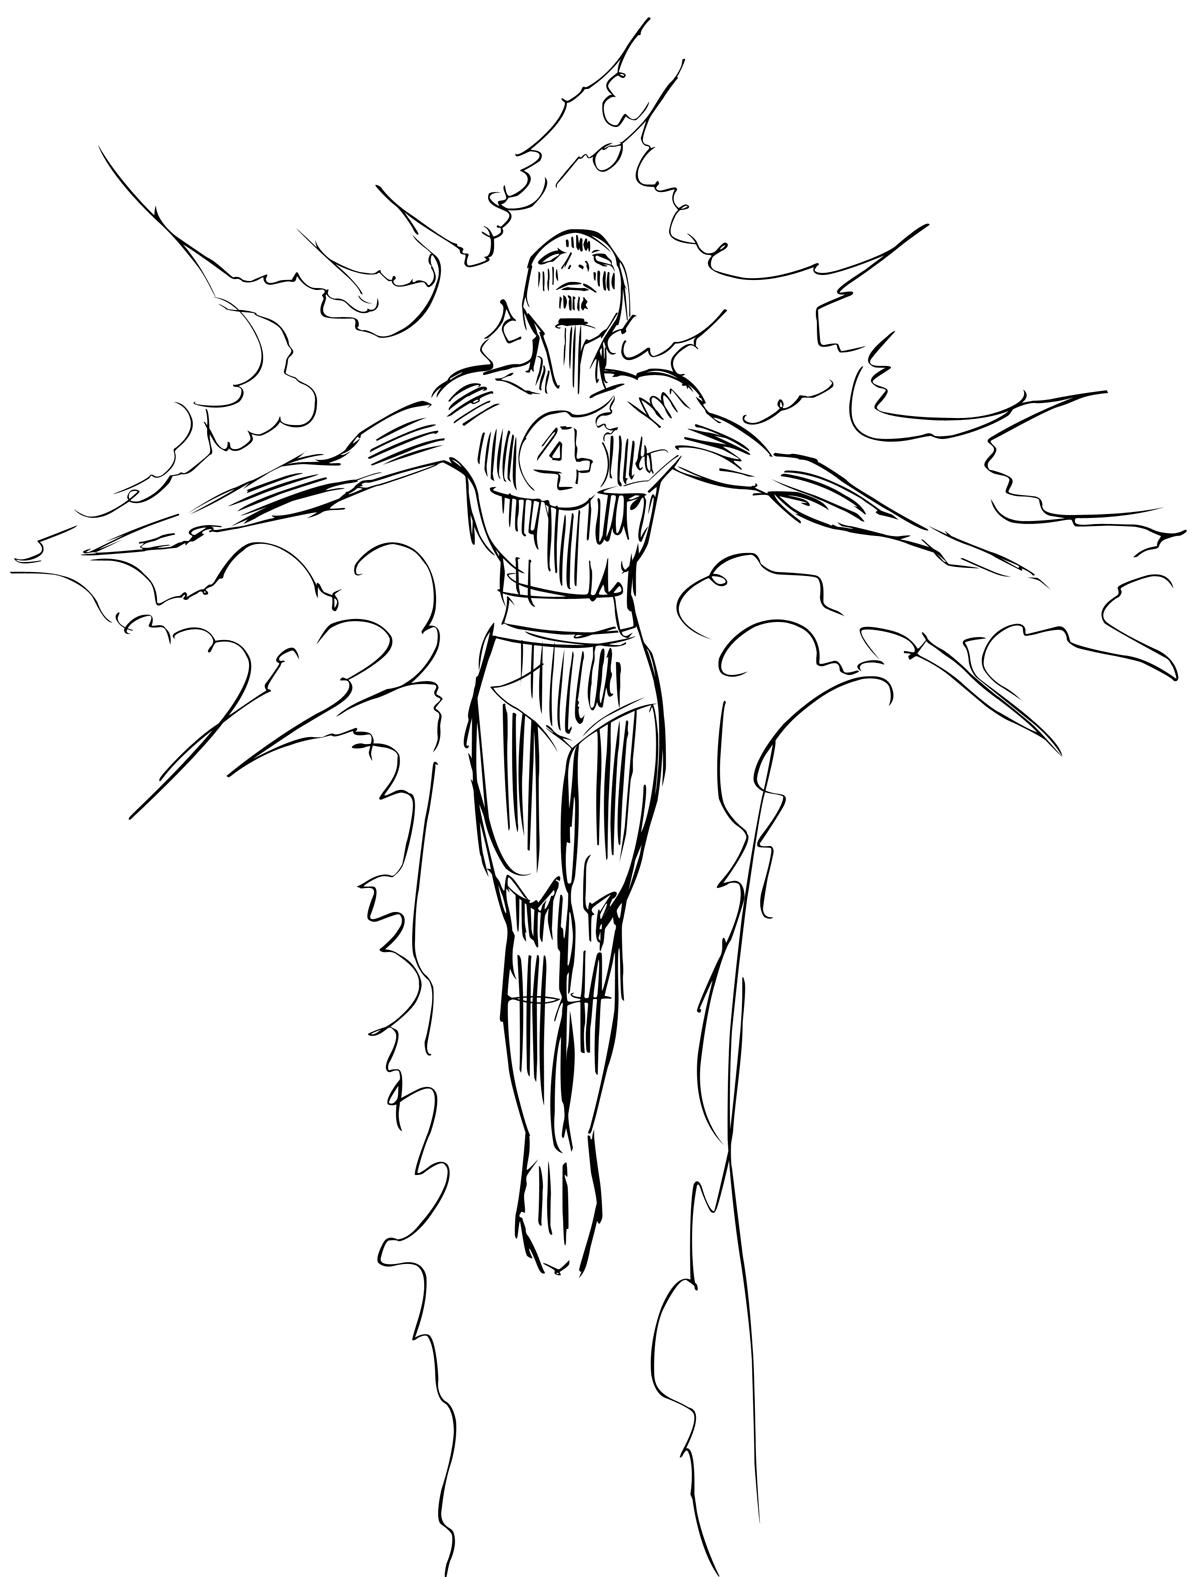 the human torch coloring pages - photo#12